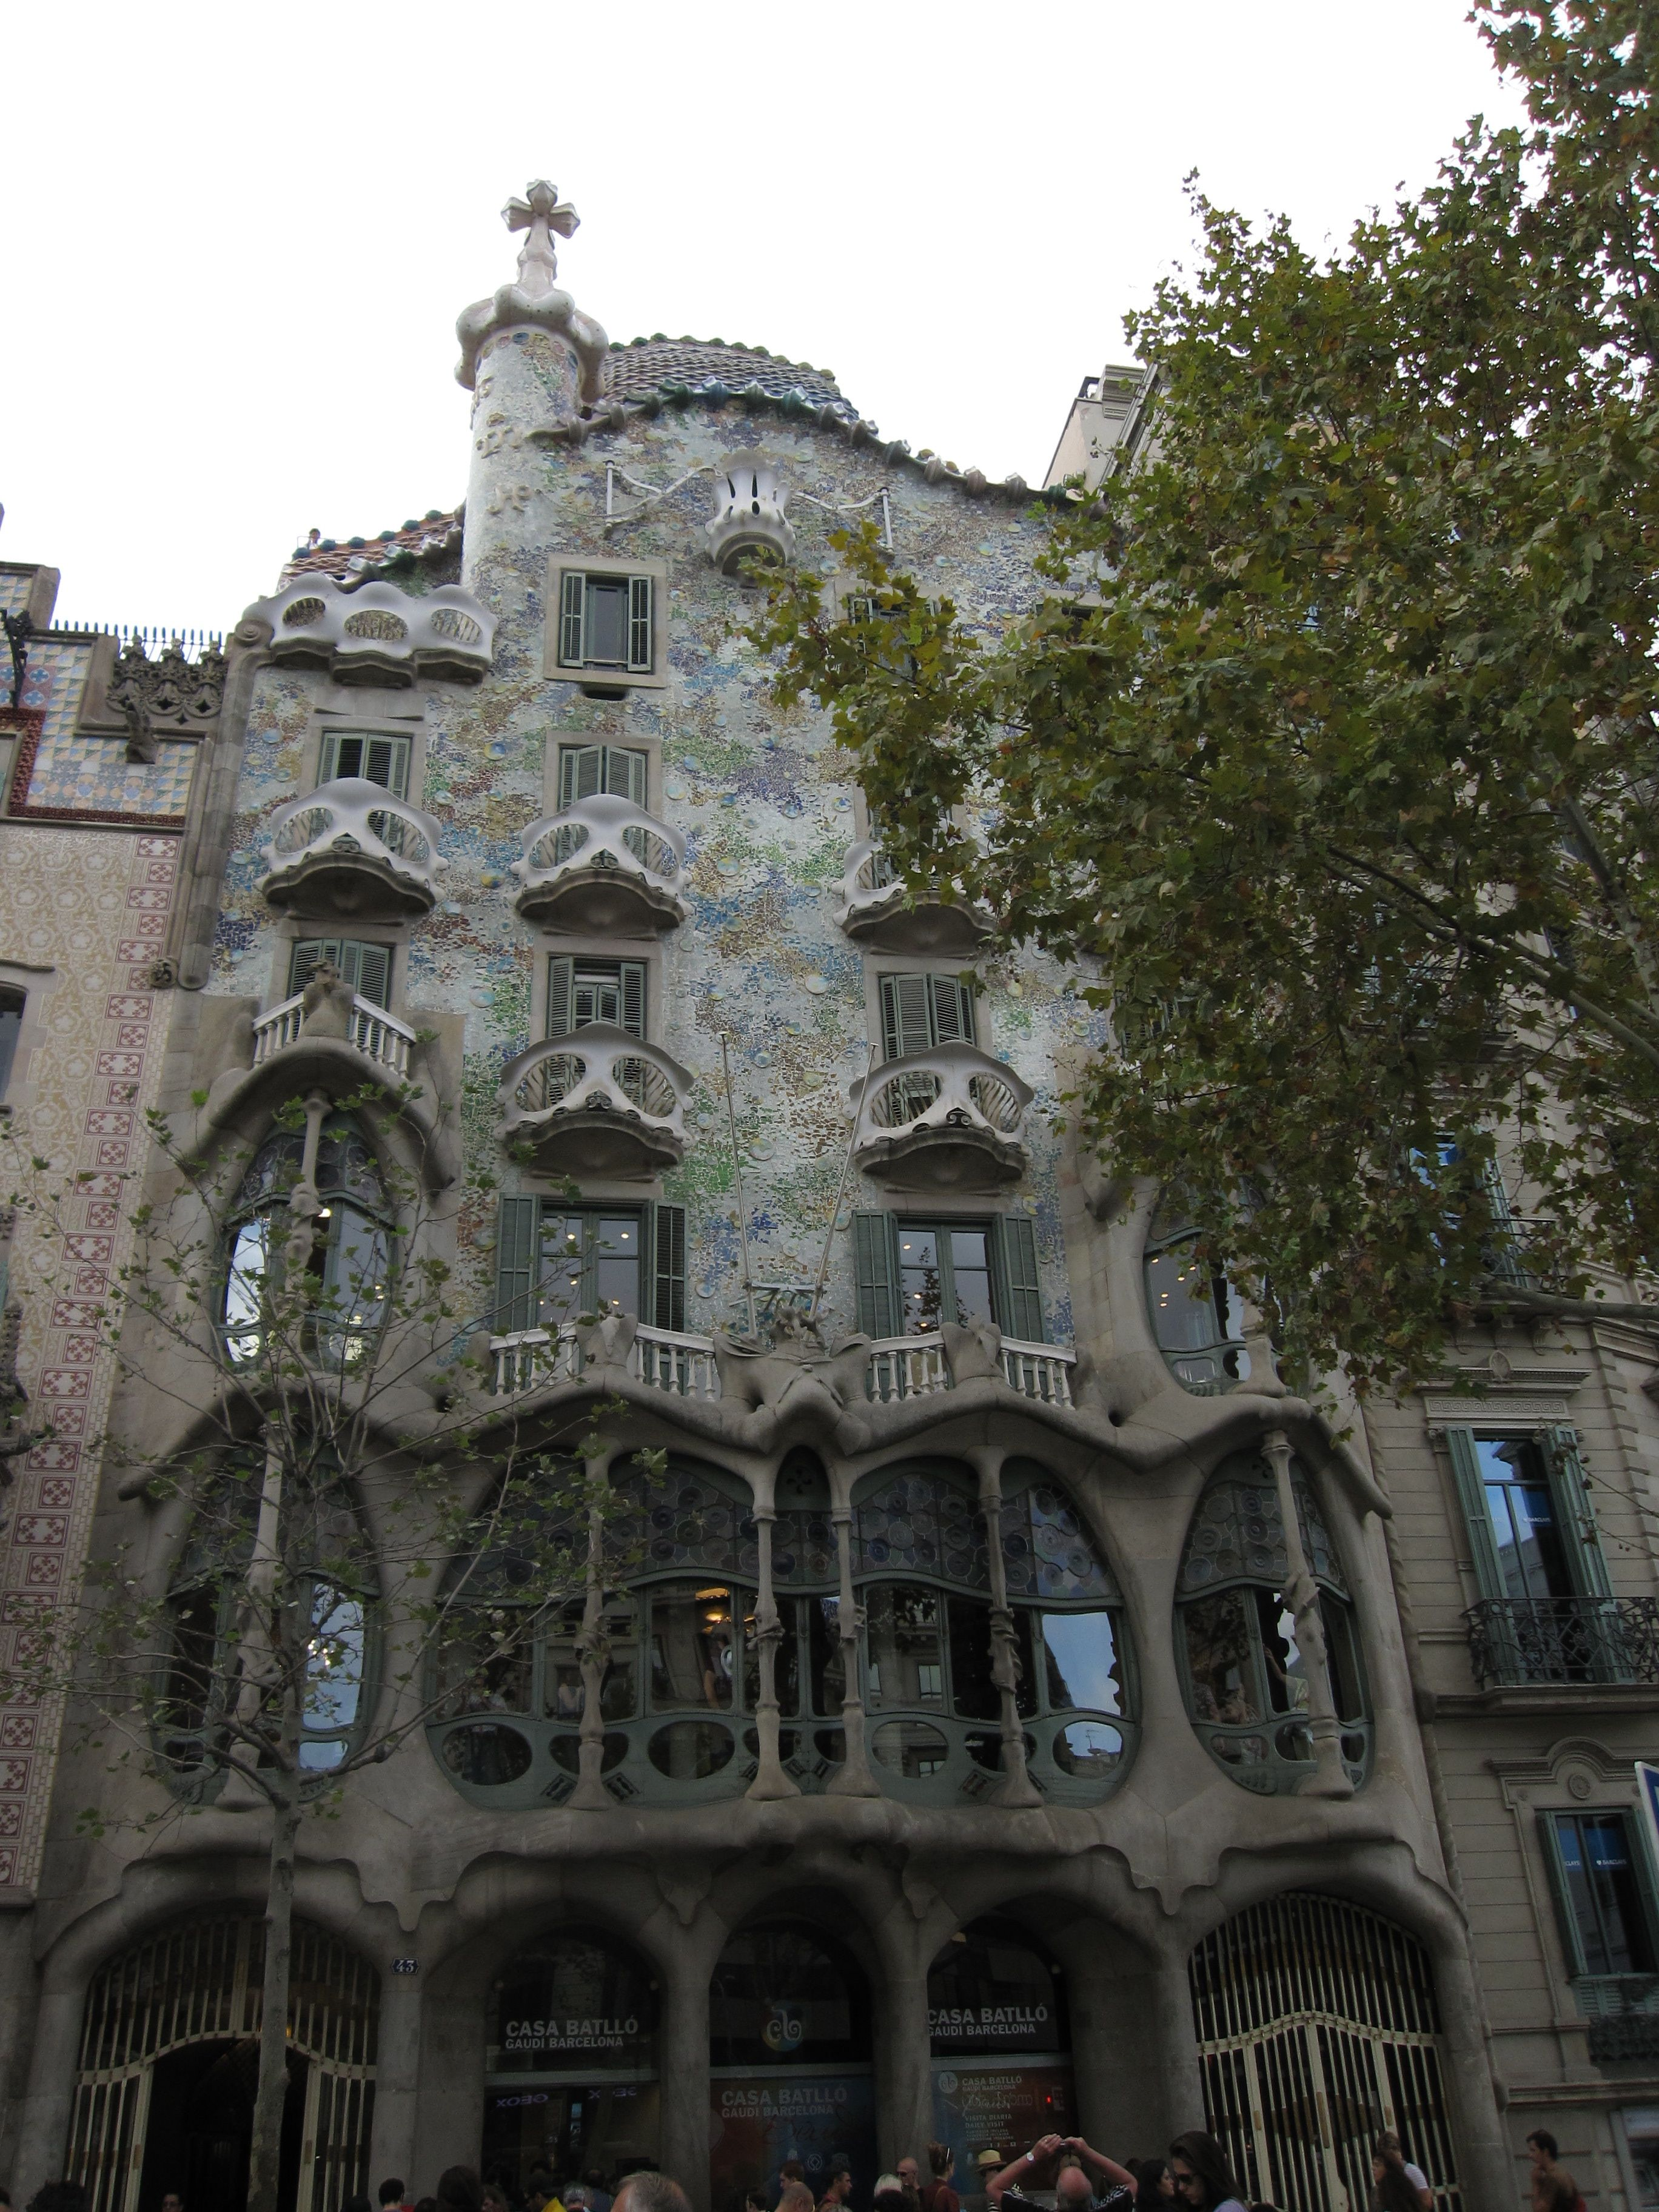 La vida de catal n barcelona spain the occasional expat - Casa en catalan ...